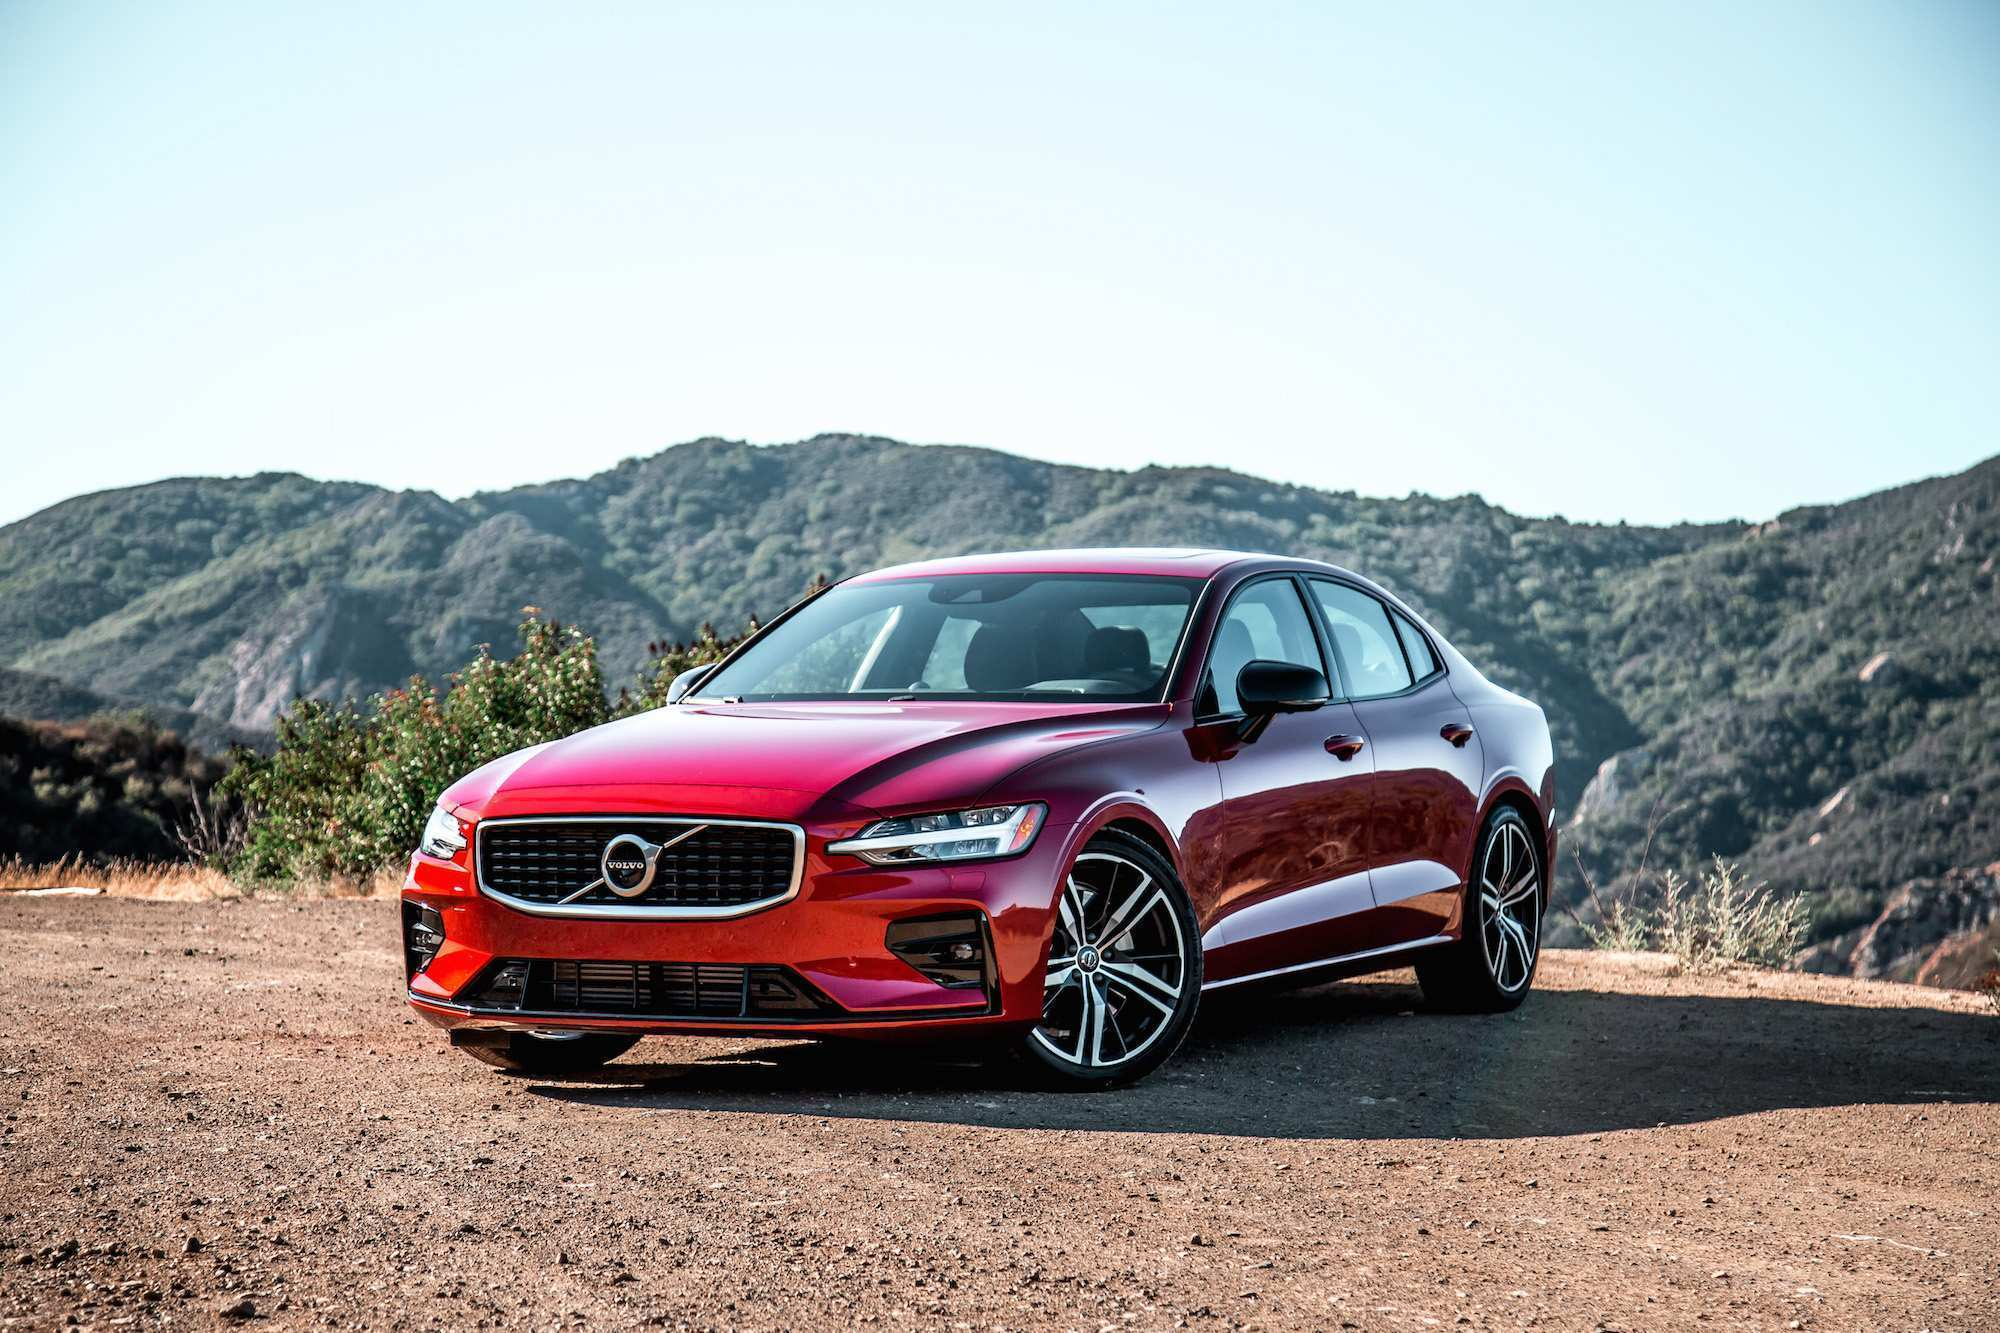 49 Gallery of 2020 Volvo S60 Length Images by 2020 Volvo S60 Length